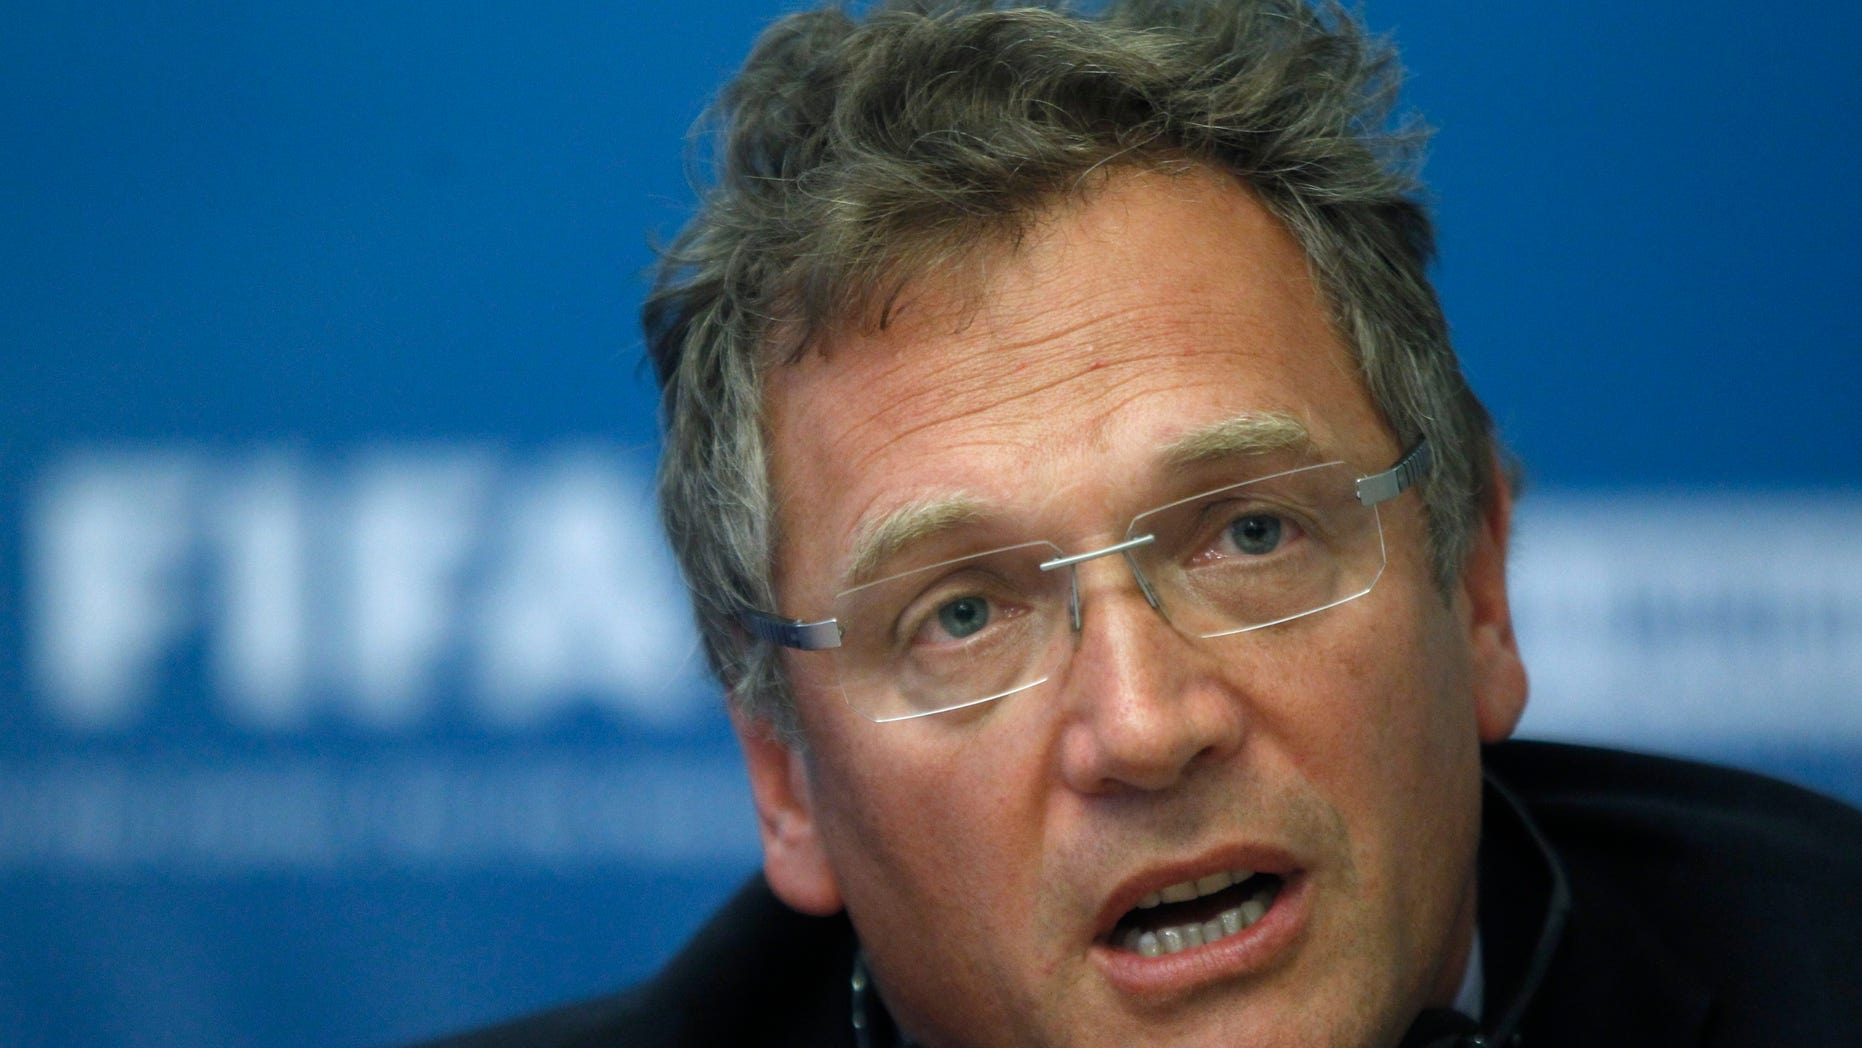 FILE - In this Tuesday, Oct. 11, 2011 file photo, FIFA General Secretary Jerome Valcke speaks during a news conference on Russia's preparations for the 2018 FIFA World Cup in Moscow, Russia. Valcke says the 2022 World Cup in Qatar will not be held in June or July because of the Gulf country's summer heat. (AP Photo/Mikhail Metzel, File)